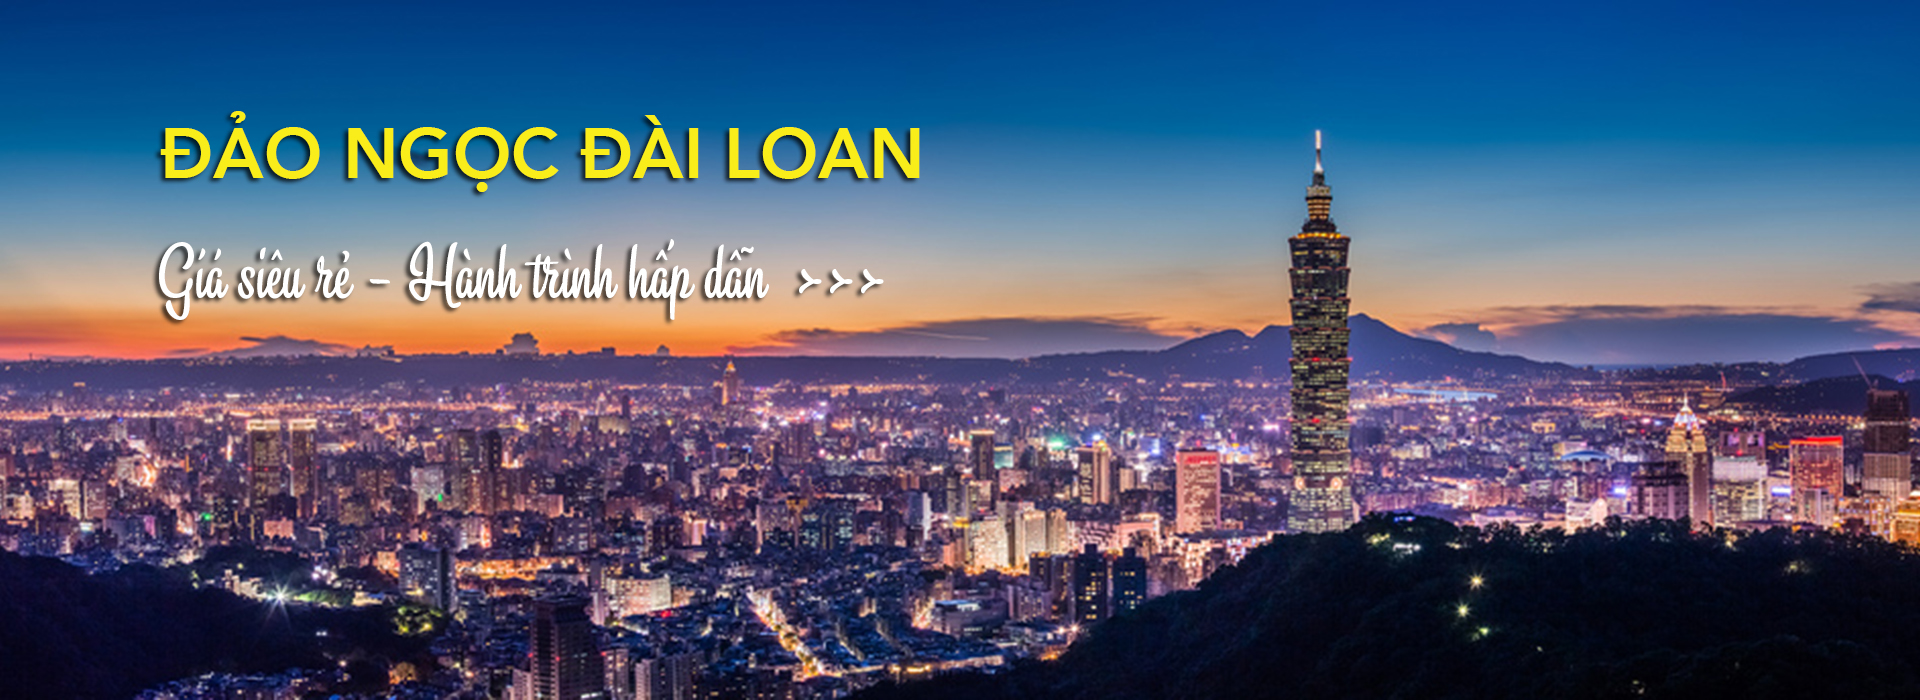 Tour du lịch Đài Loan